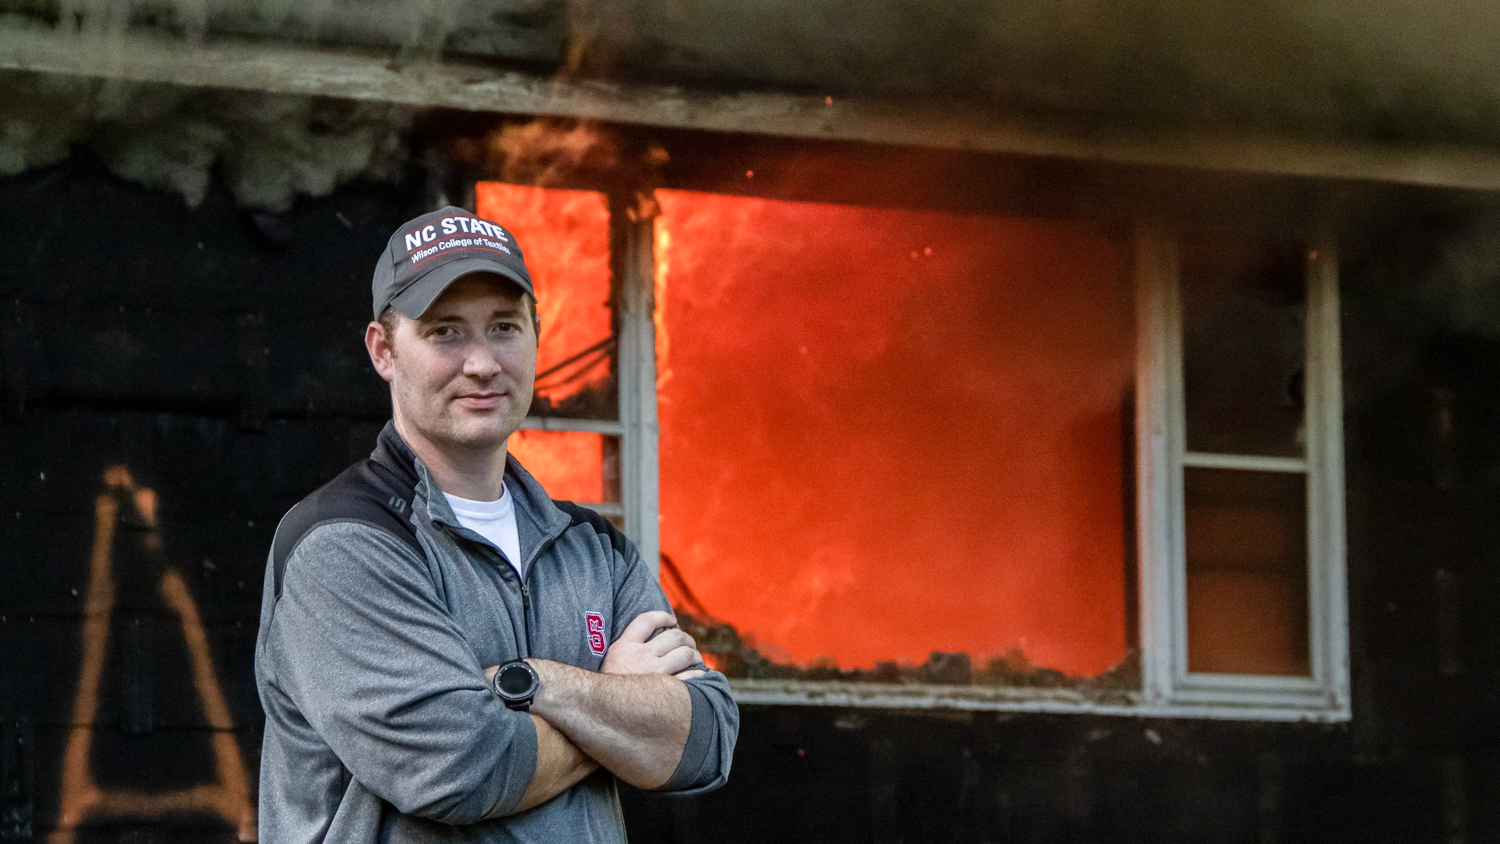 Dr. Bryan Ormond at a controlled burn